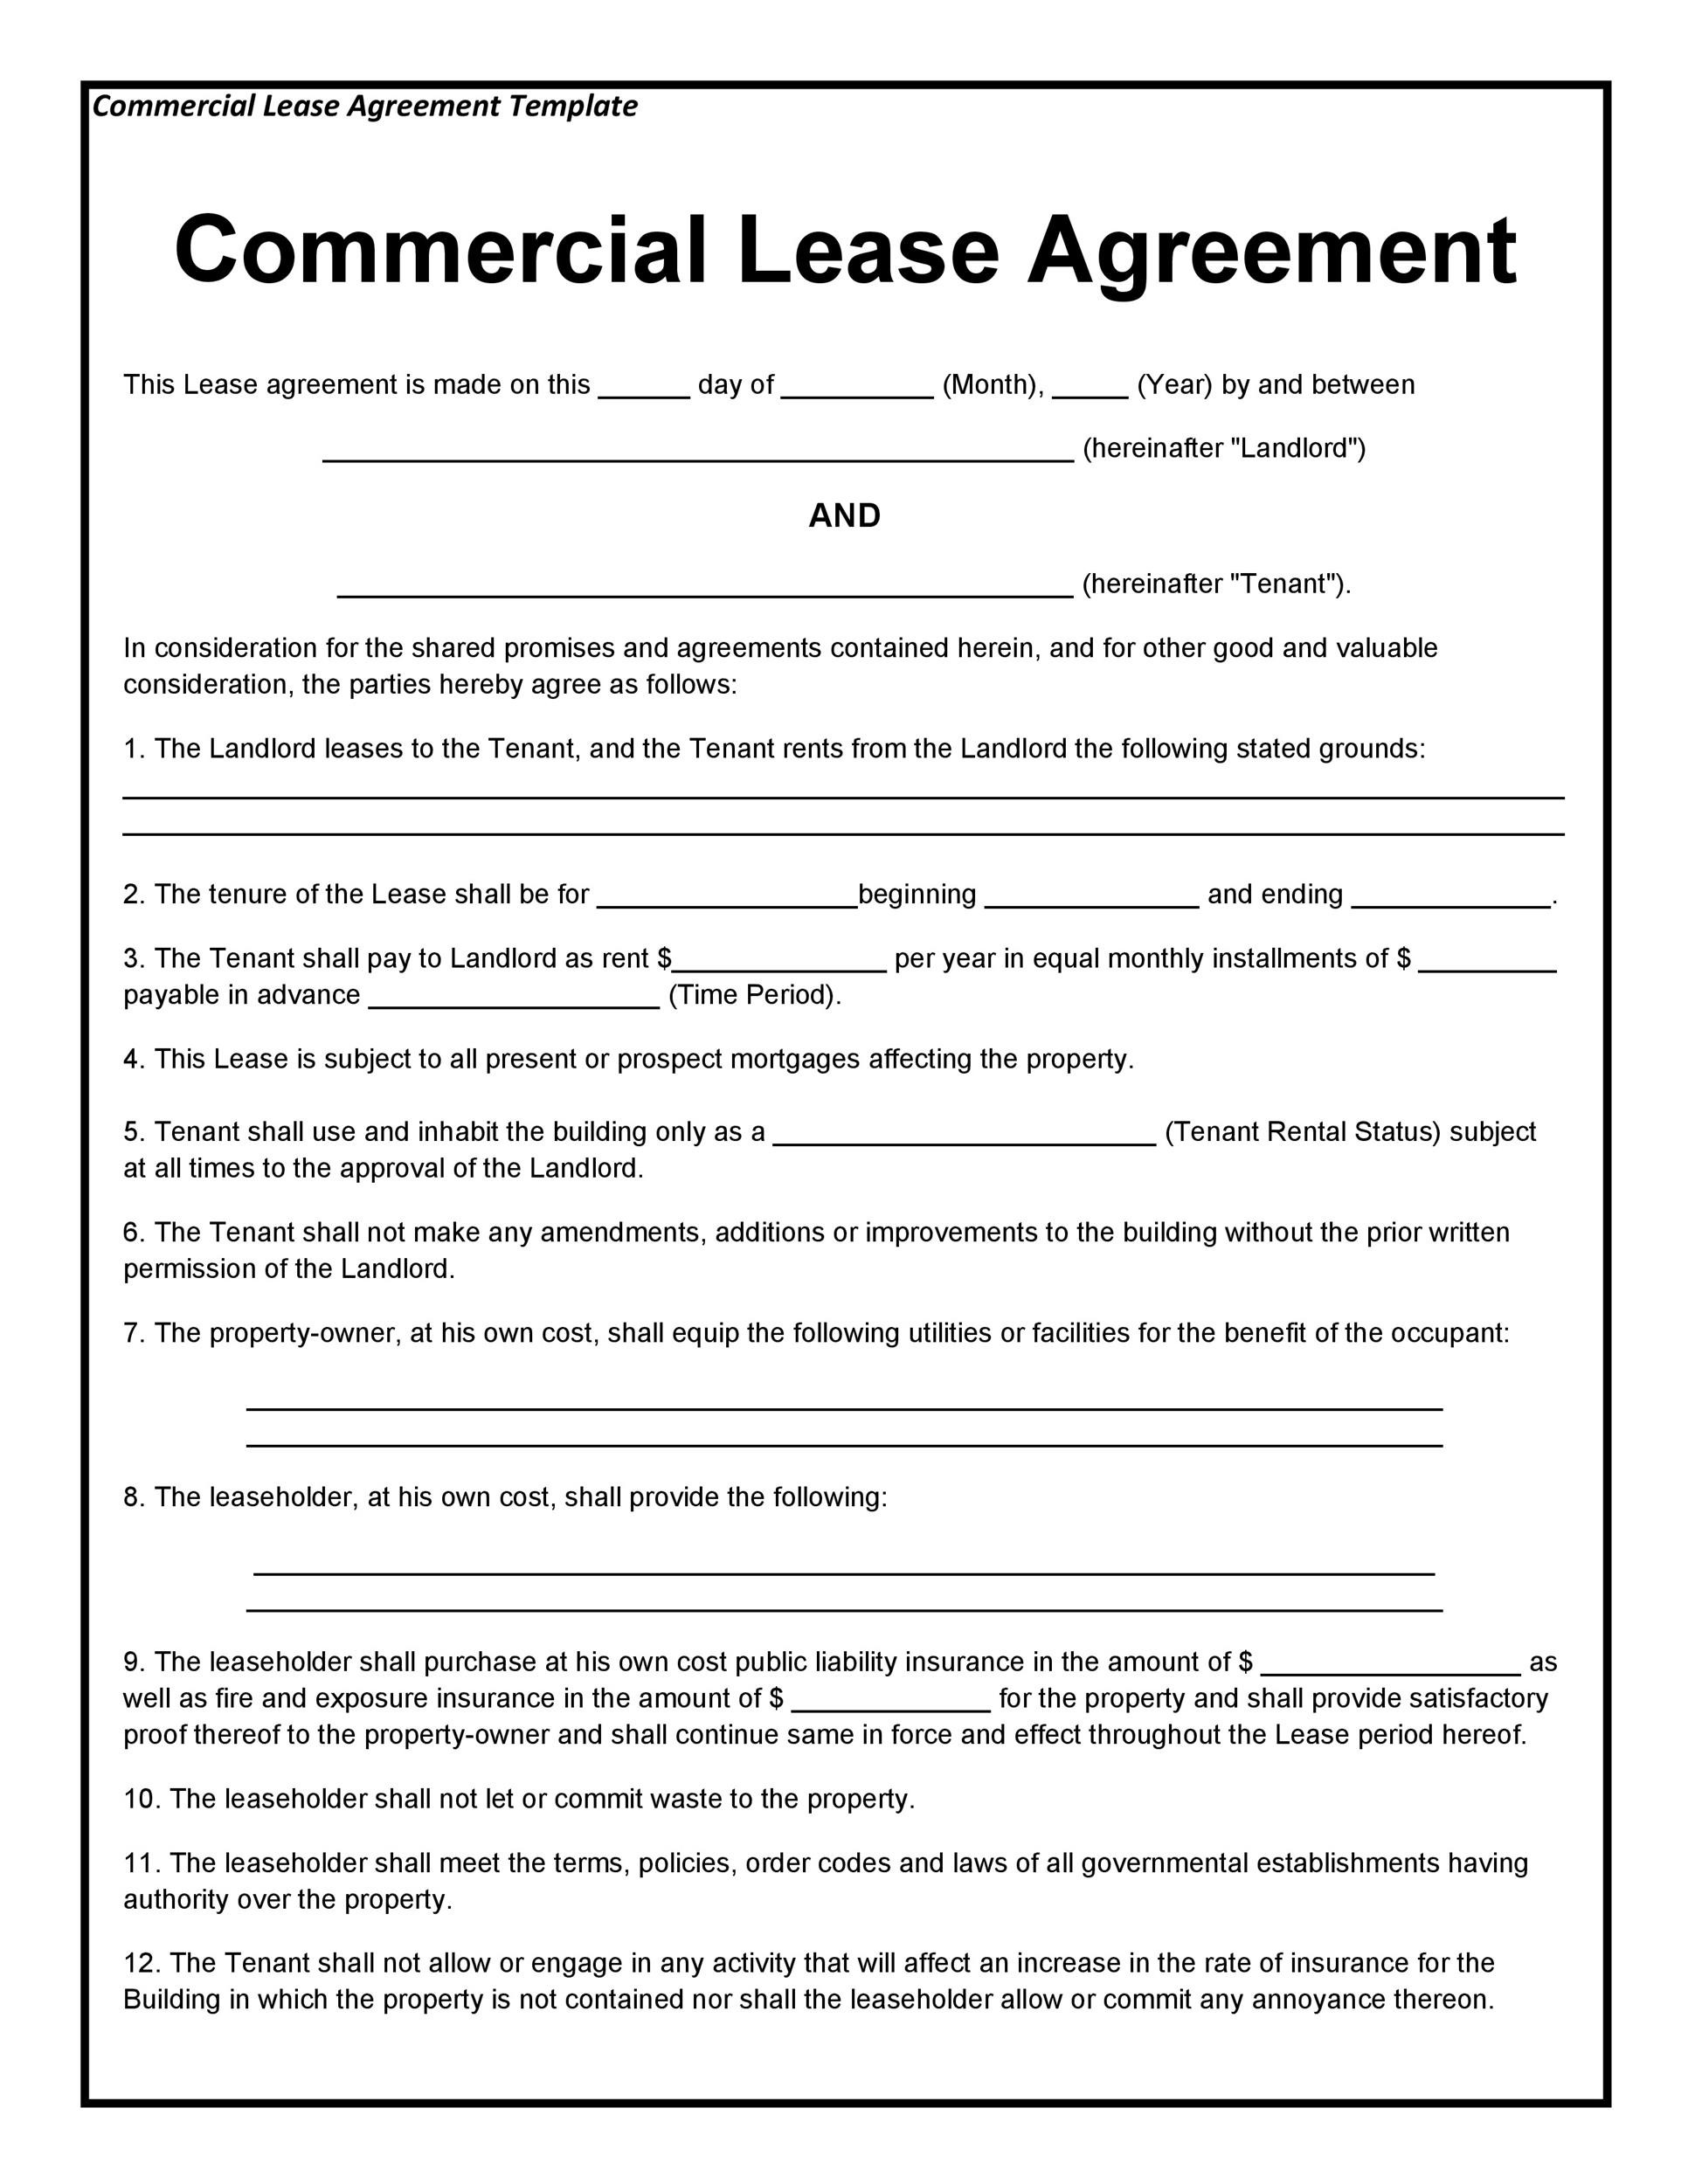 Printable Commercial Lease Agreement Template 04  Free Lease Agreements Templates